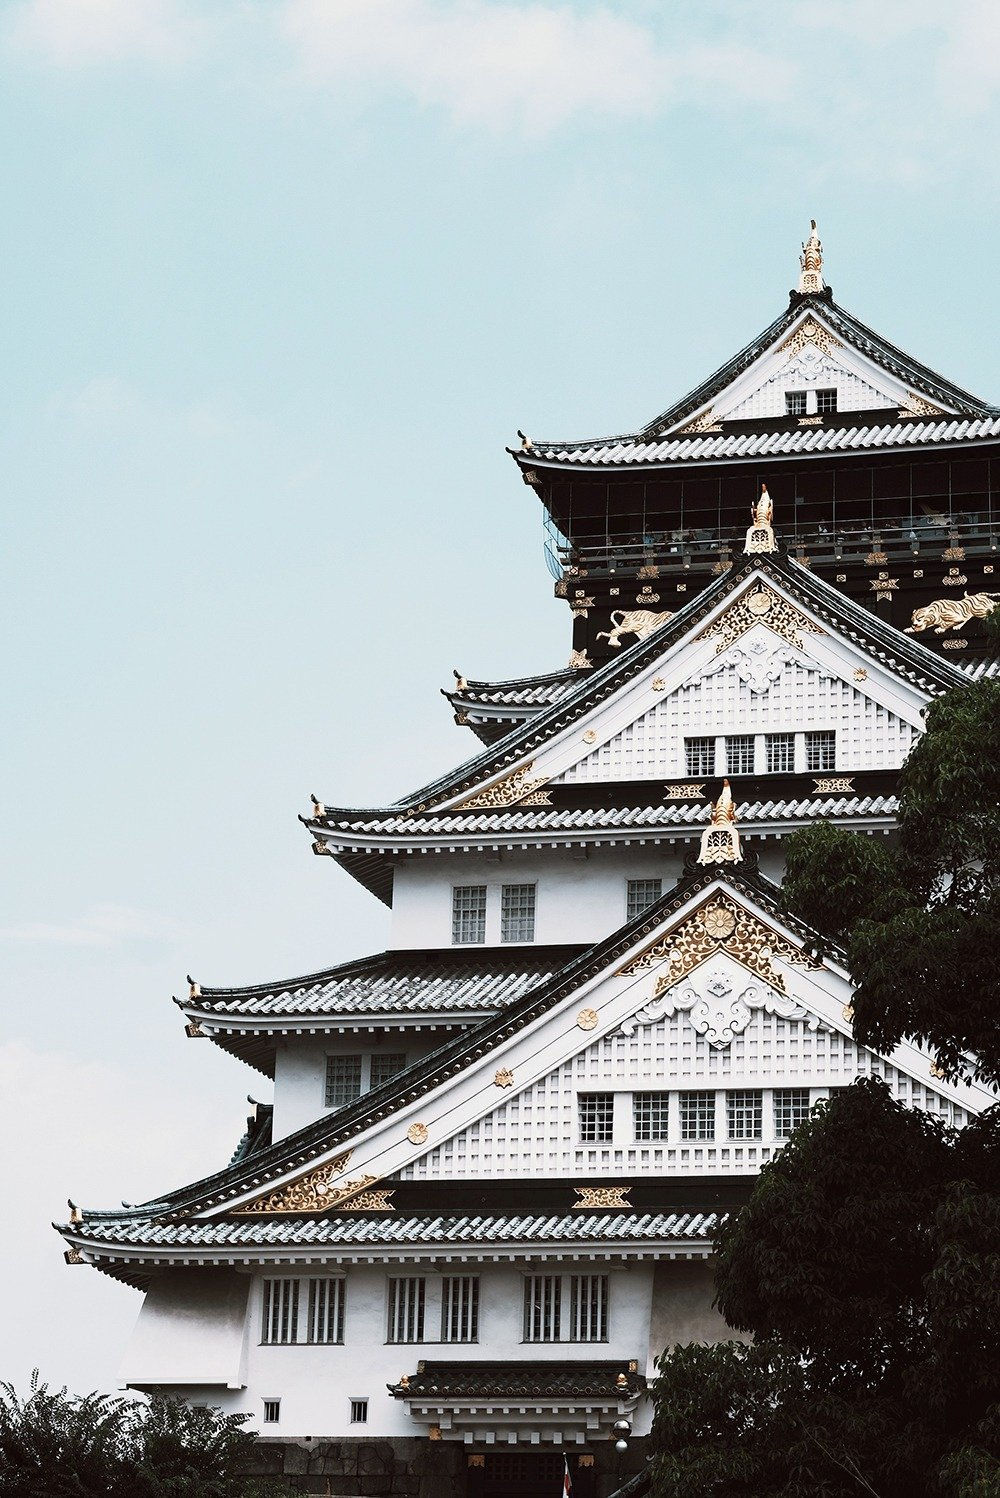 Osaka is home to a great food and local culture, modern architecture, and its very own castle! The city is definitely worth checking out for a couple of days, and it's also a great base for adventures to Kyoto, Nara, and Kobe. If you're headed to Kansai, here's where to stay in Osaka.